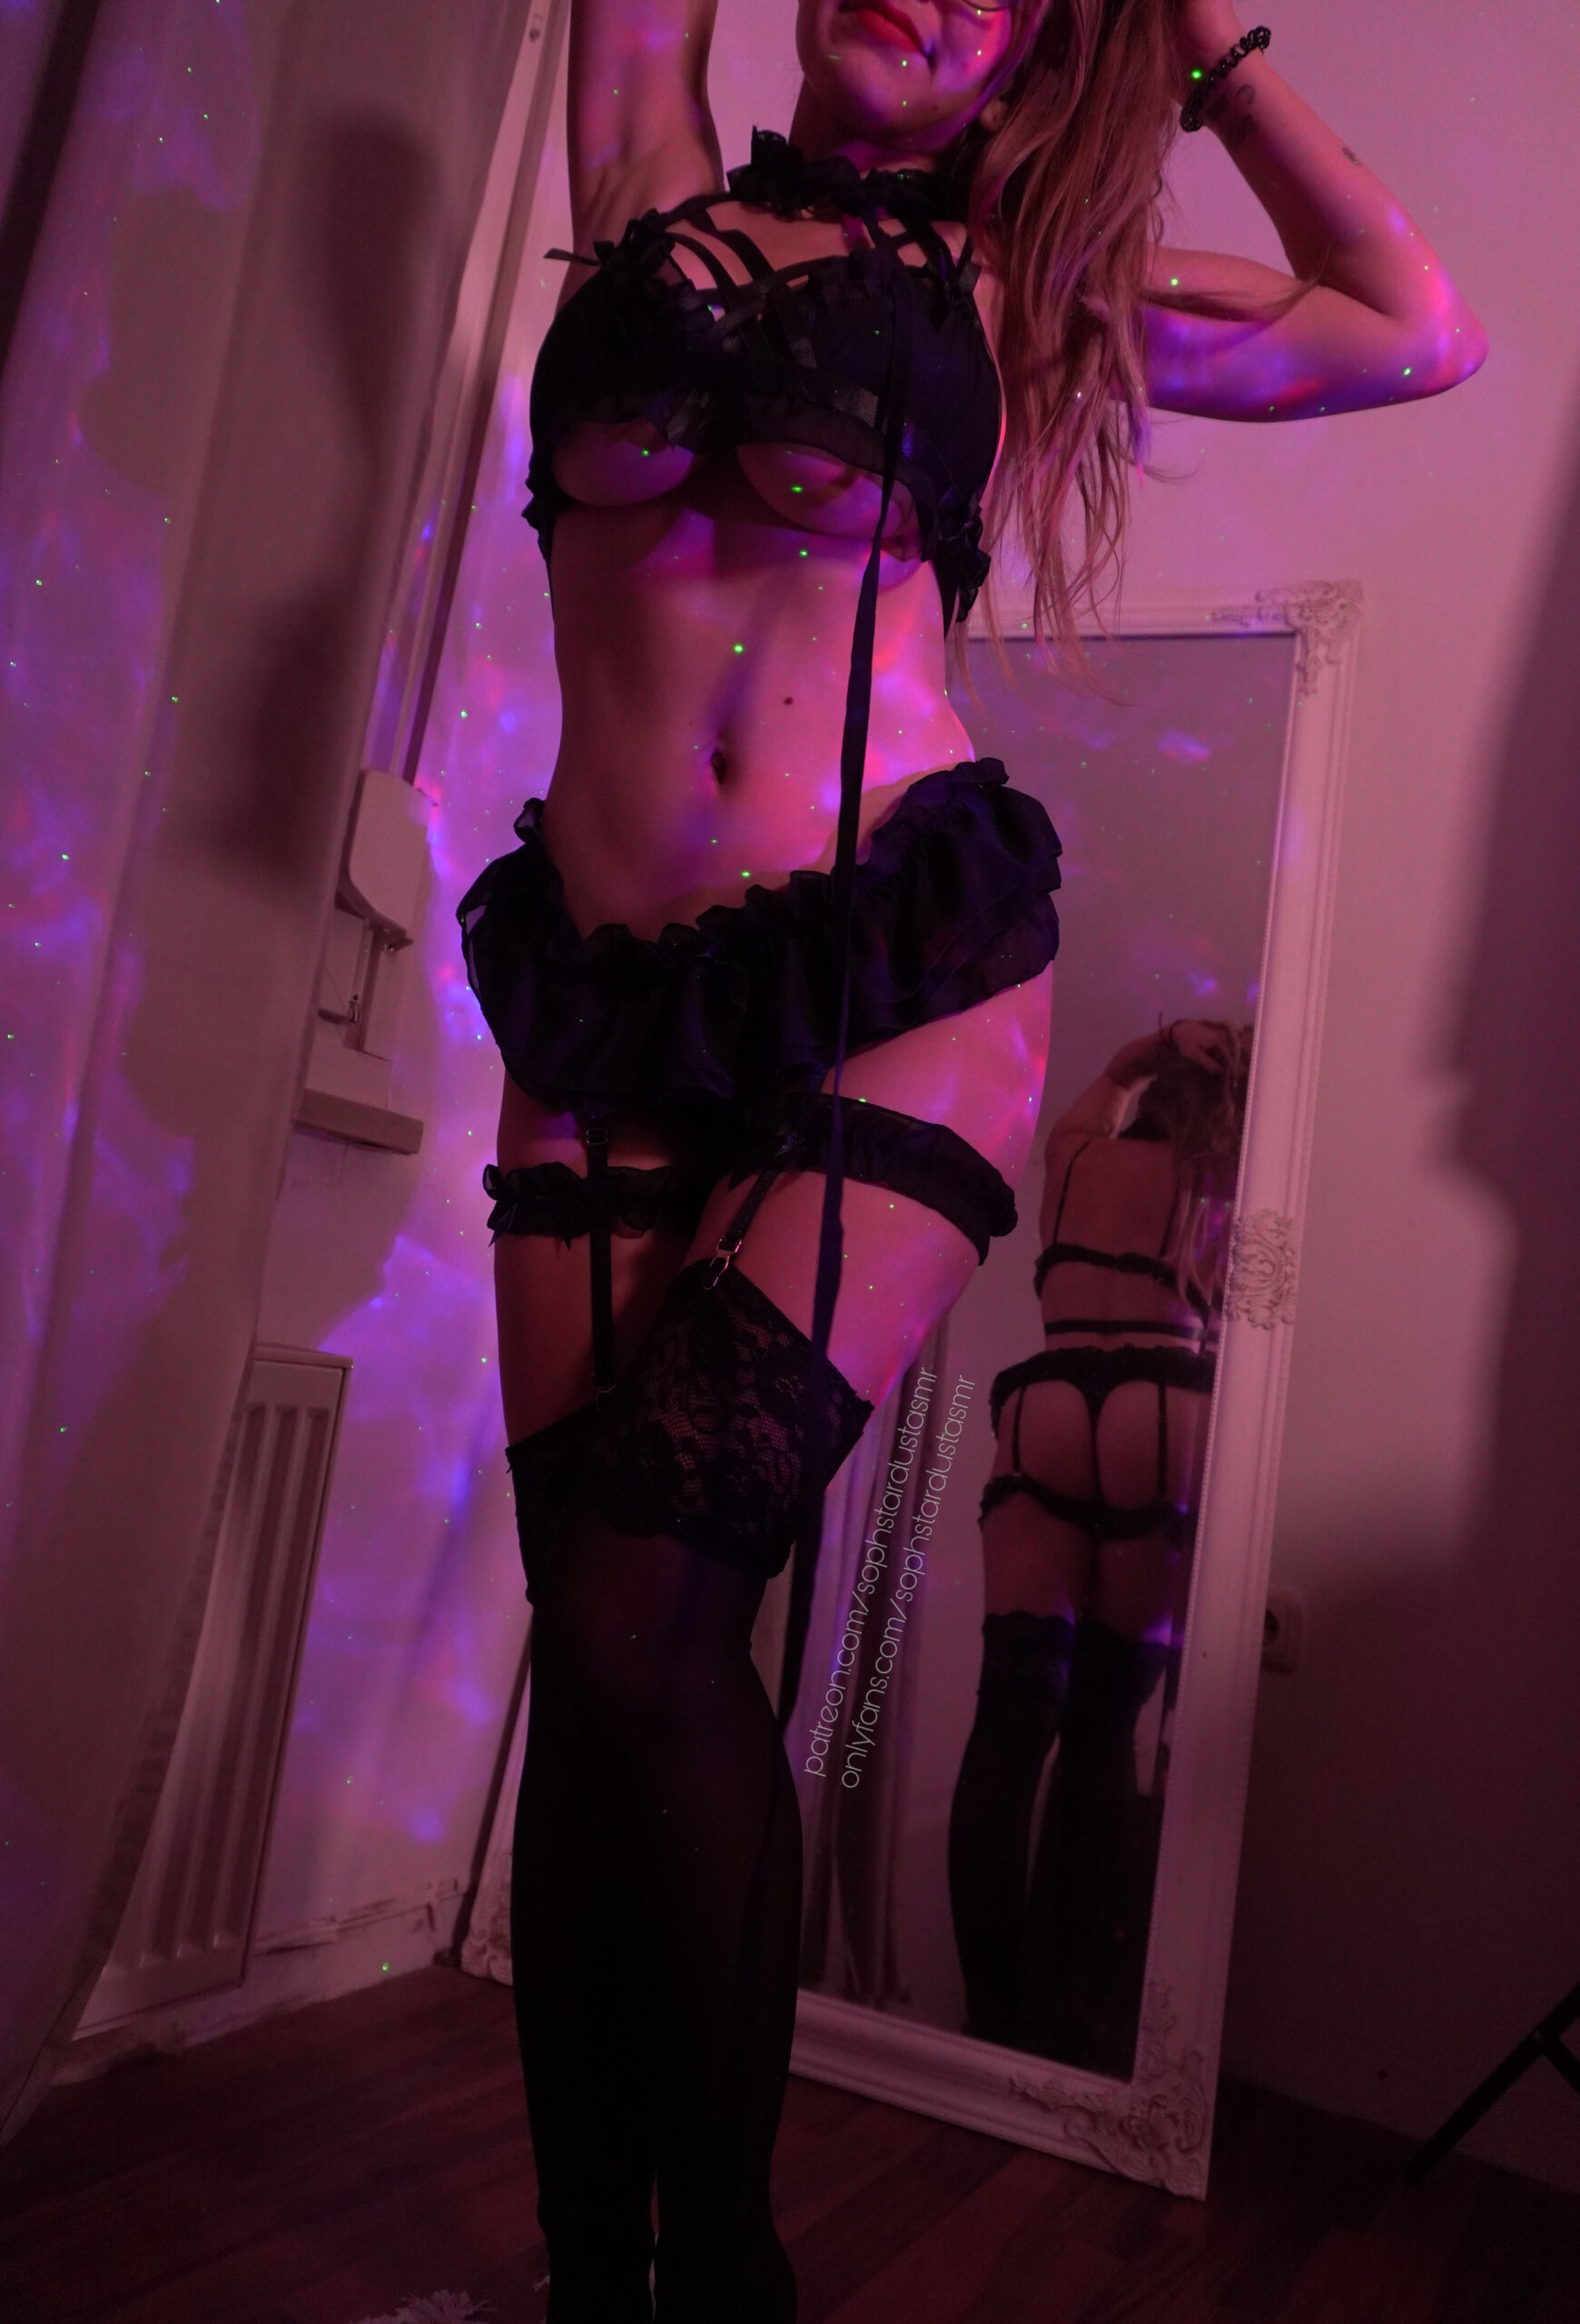 Soph Stardust ASMR Kitty Black Lingerie